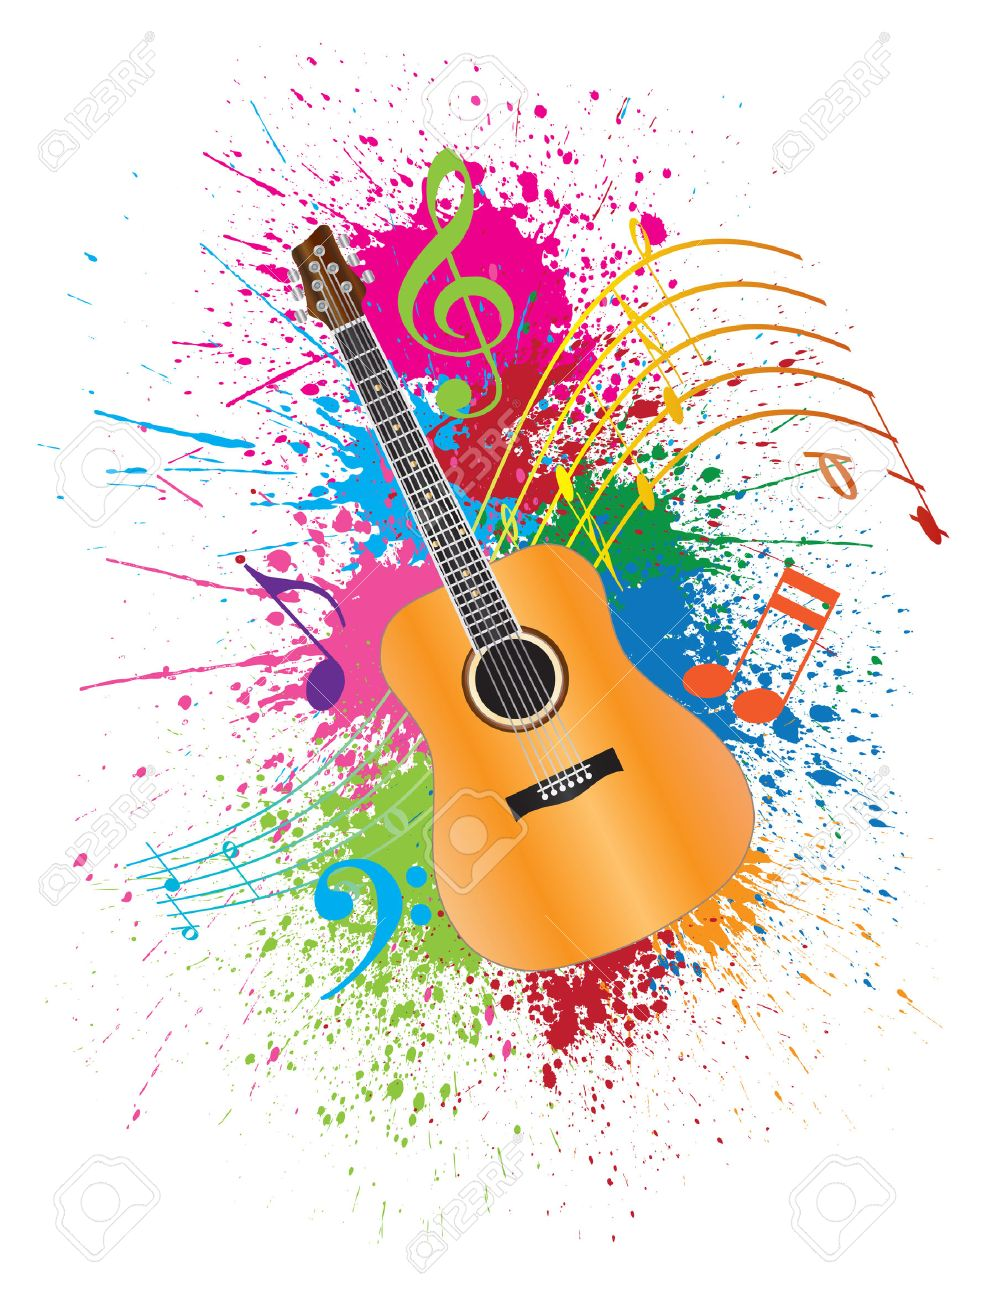 Acoustic Guitar With Musical Notes And Paint Splatter Abstract